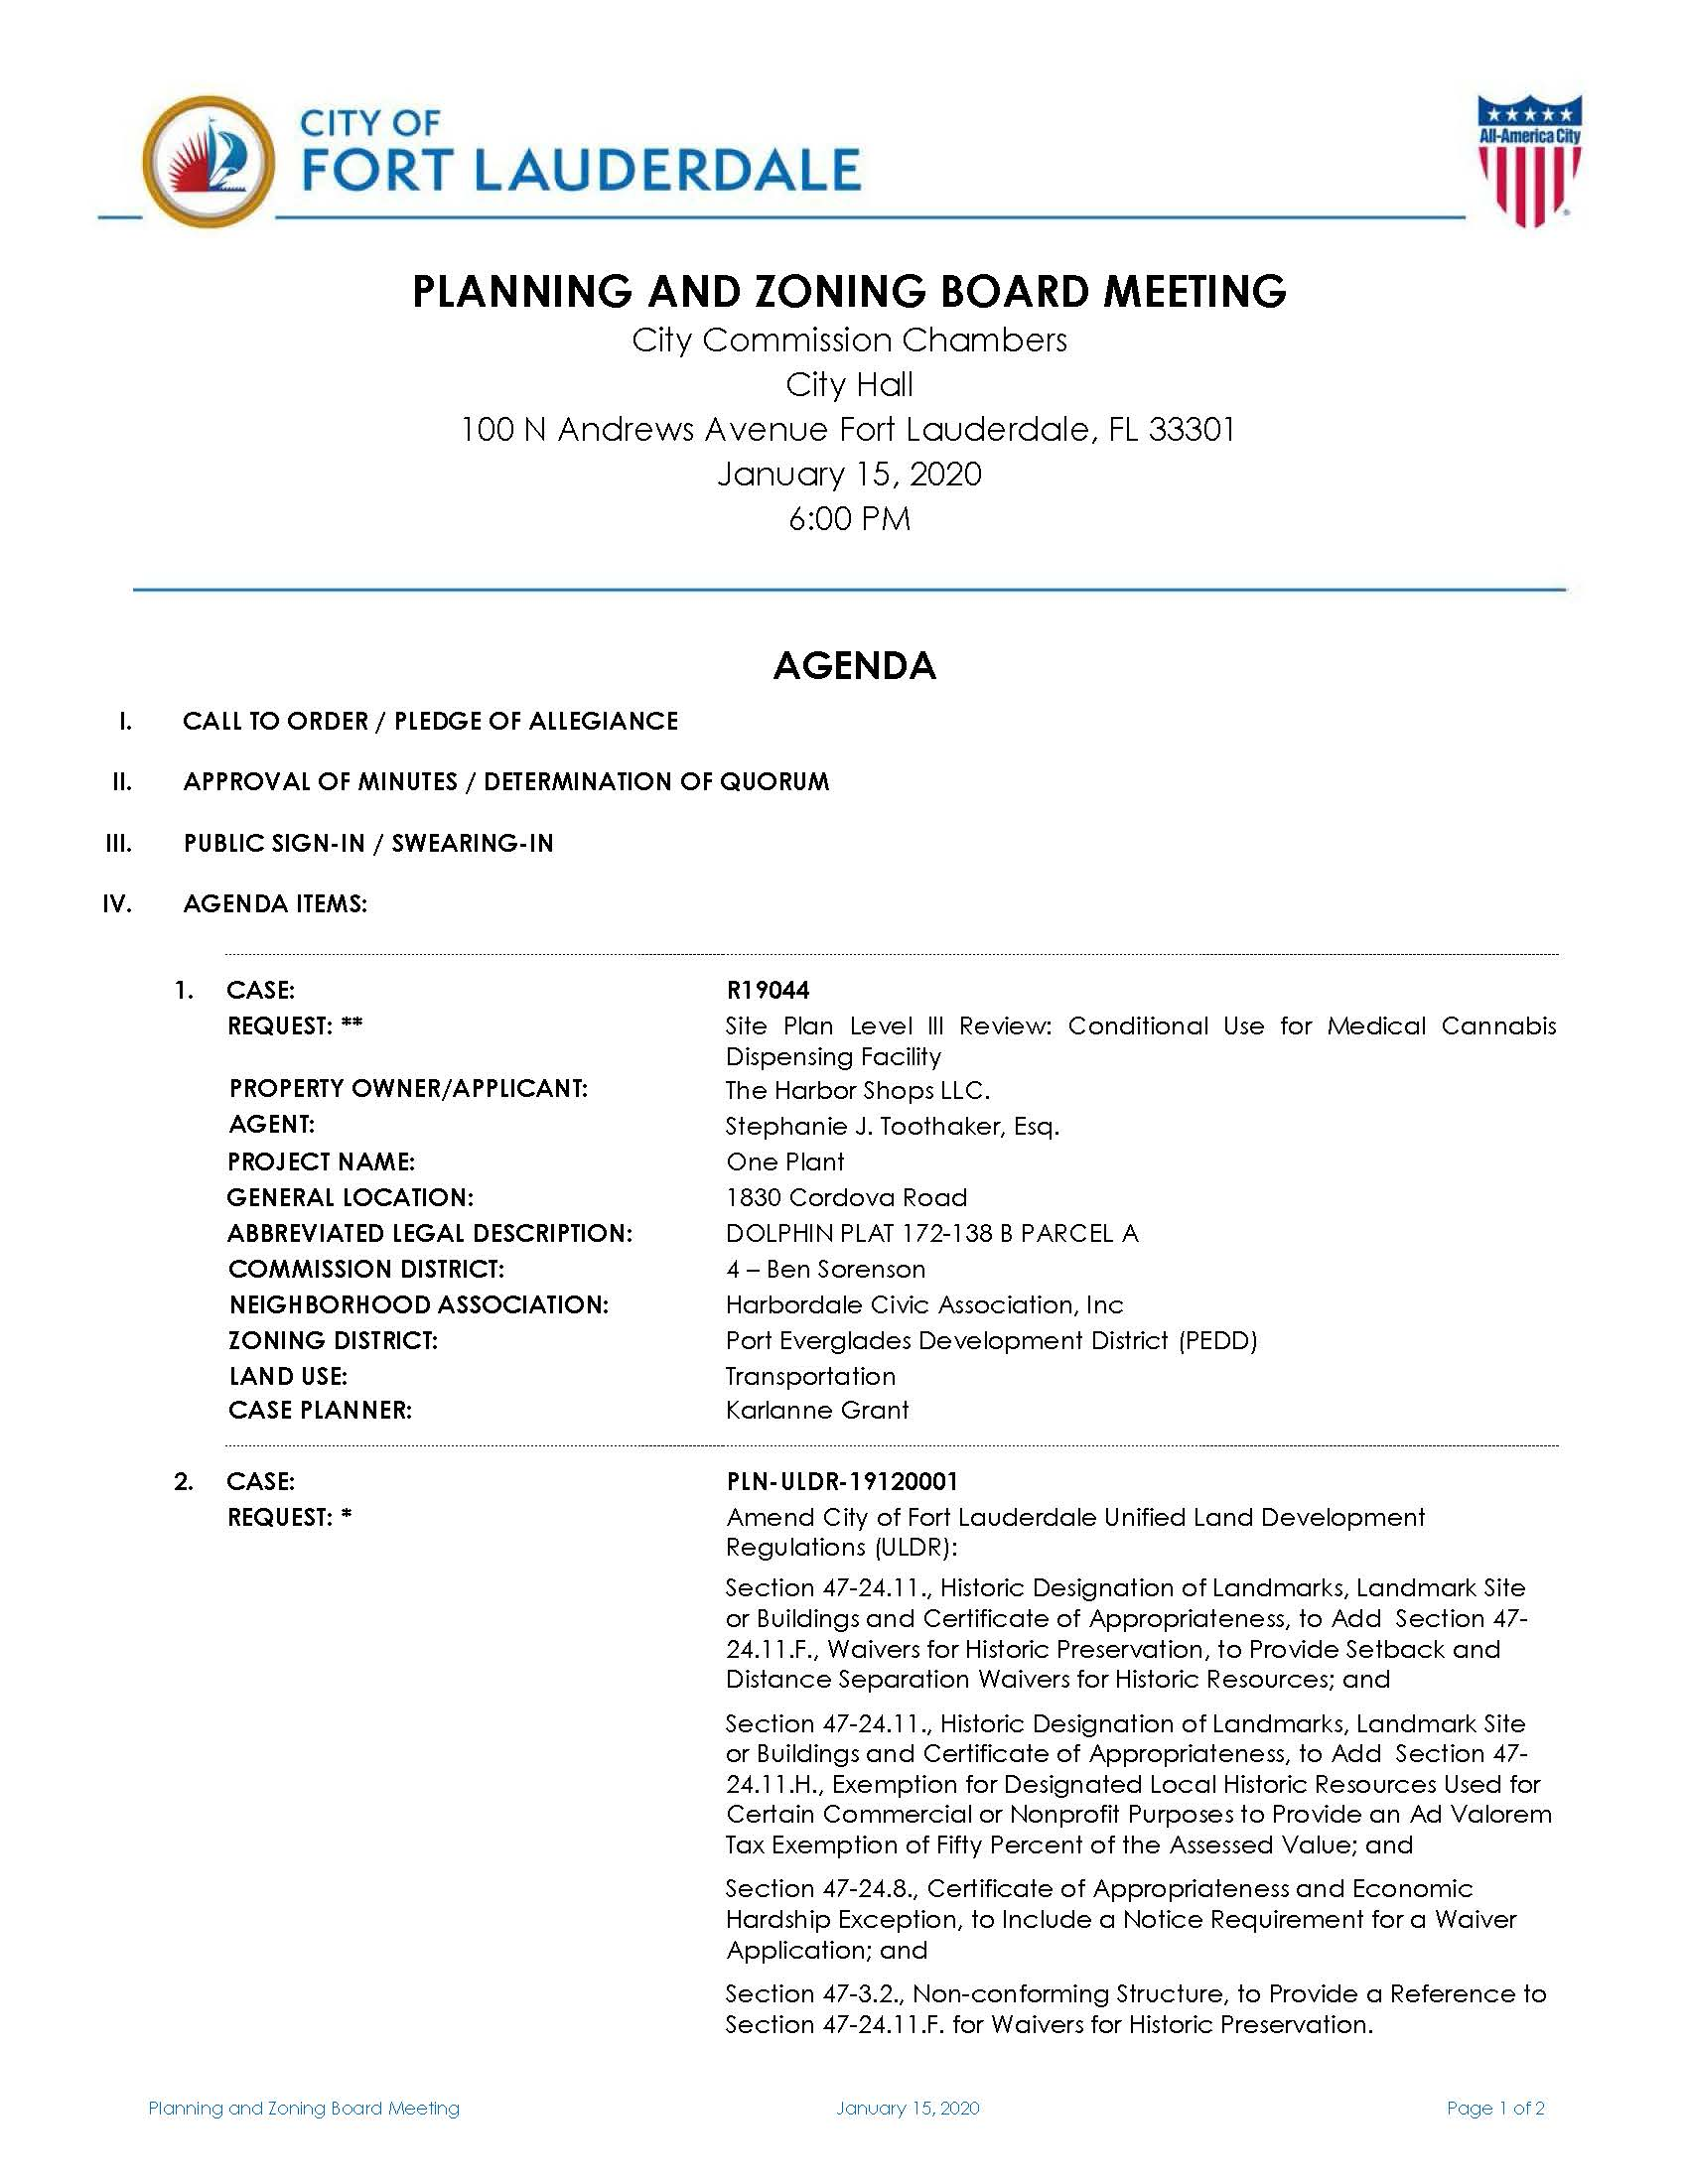 January_15_2020_Planning_and_Zoning_Board_Agenda_Page_1.jpg